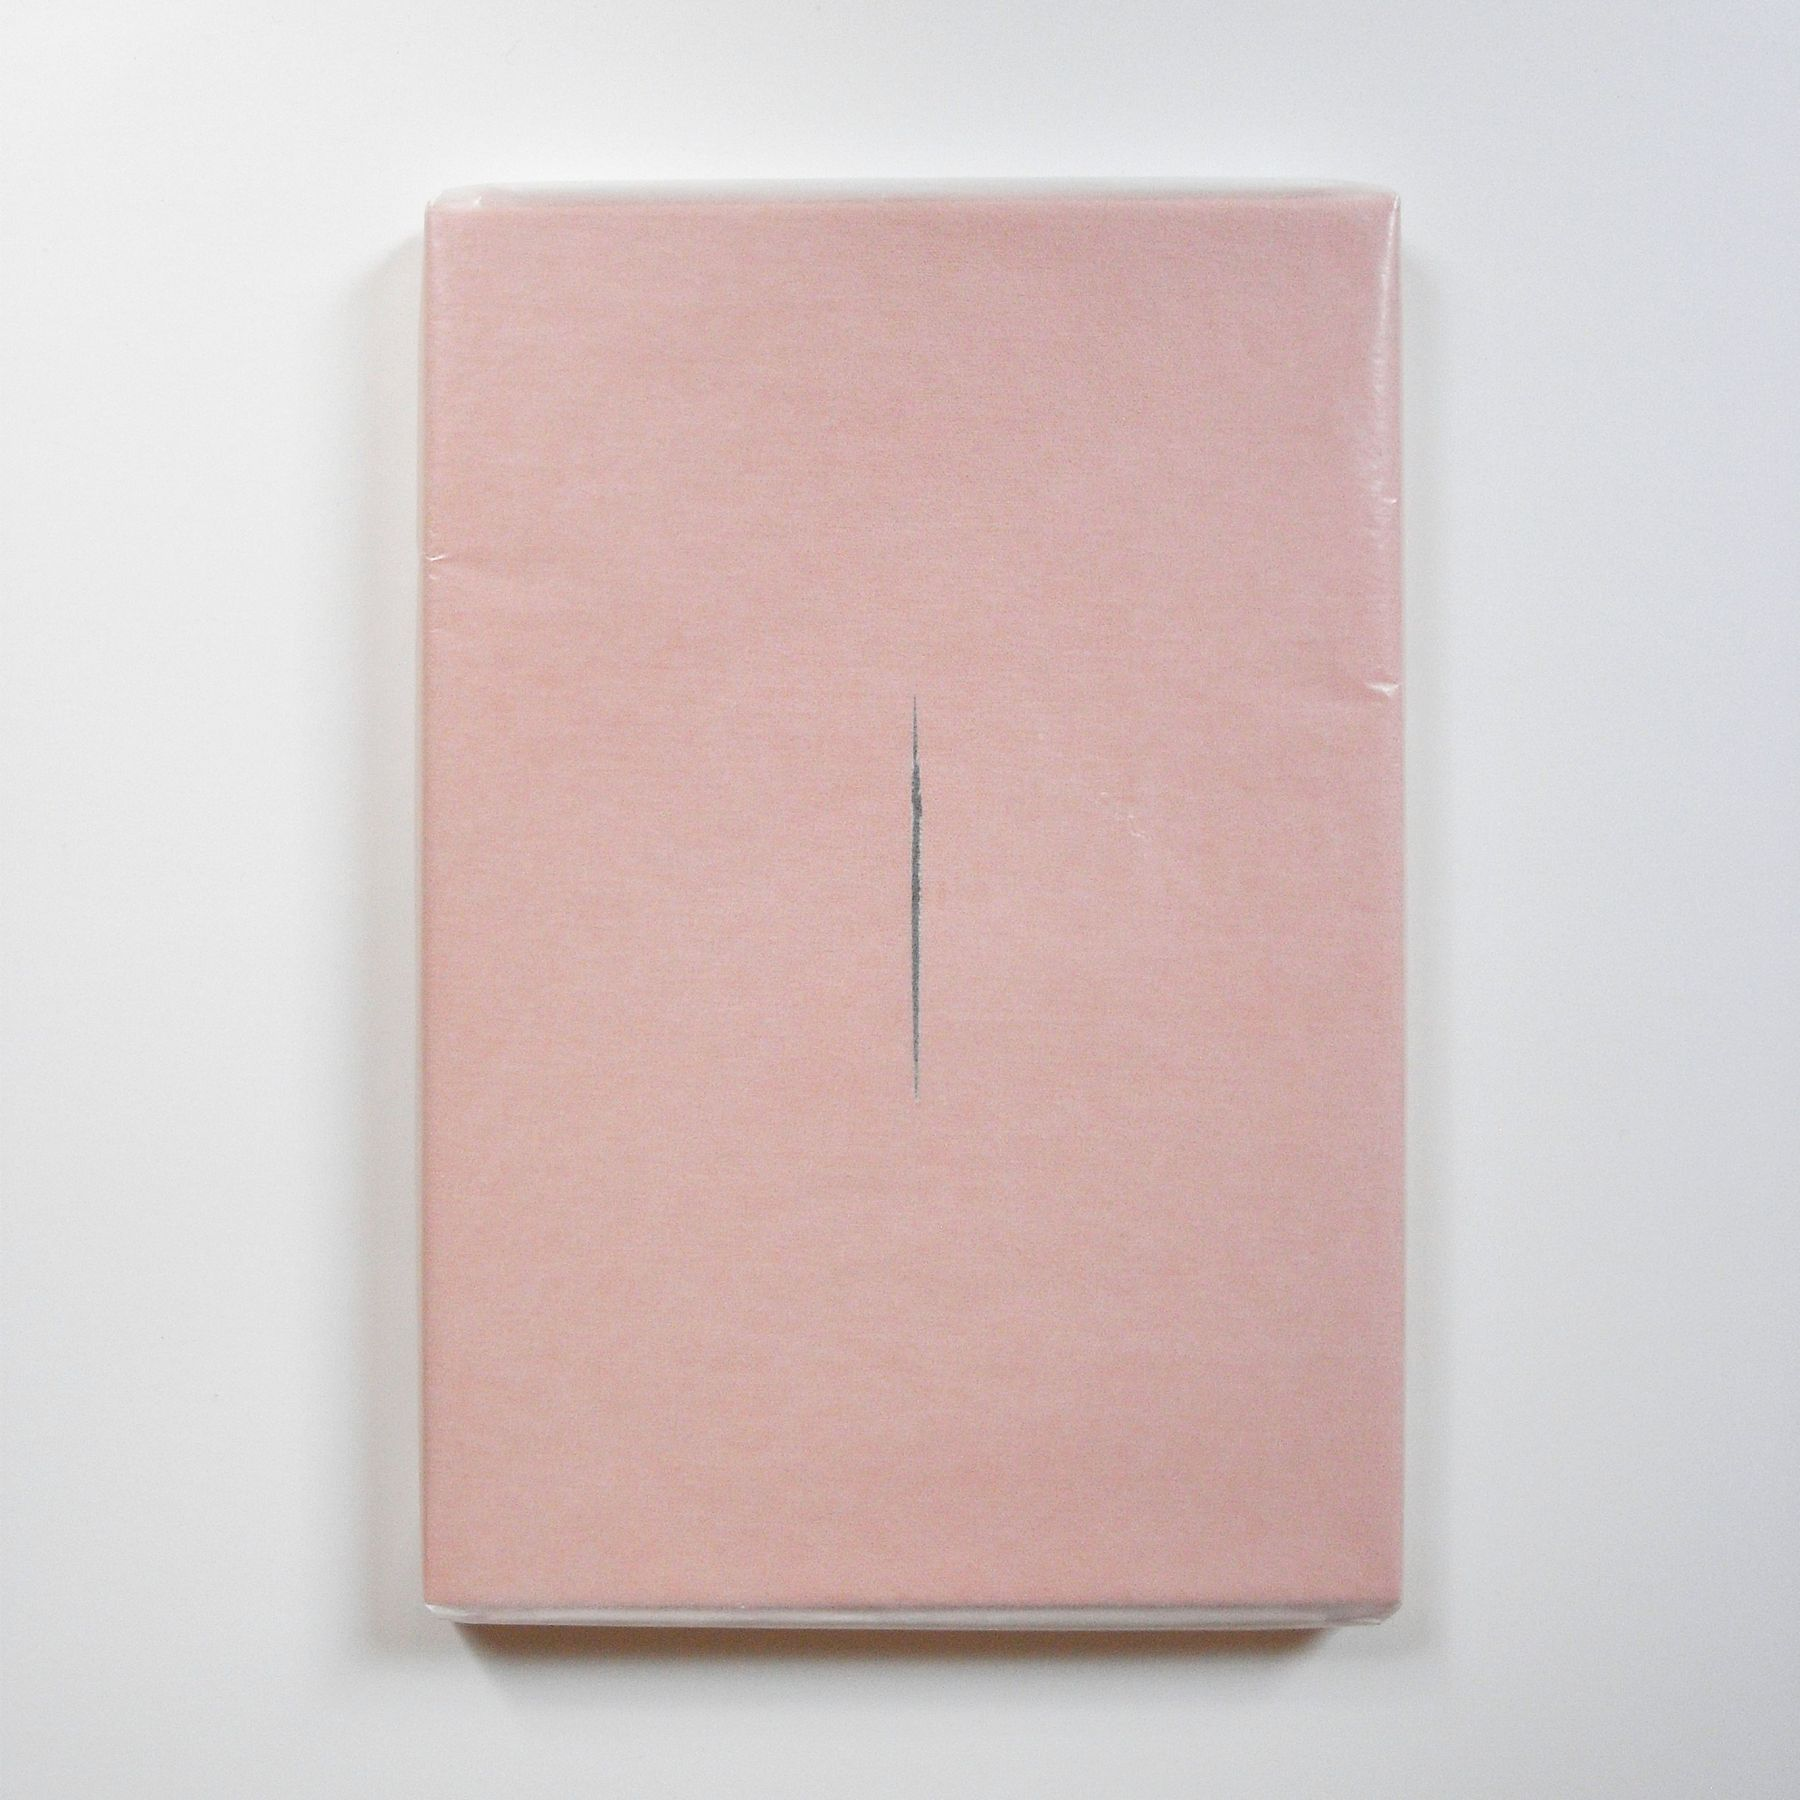 Lucie Fontaine, Pink Cut #1, 2012